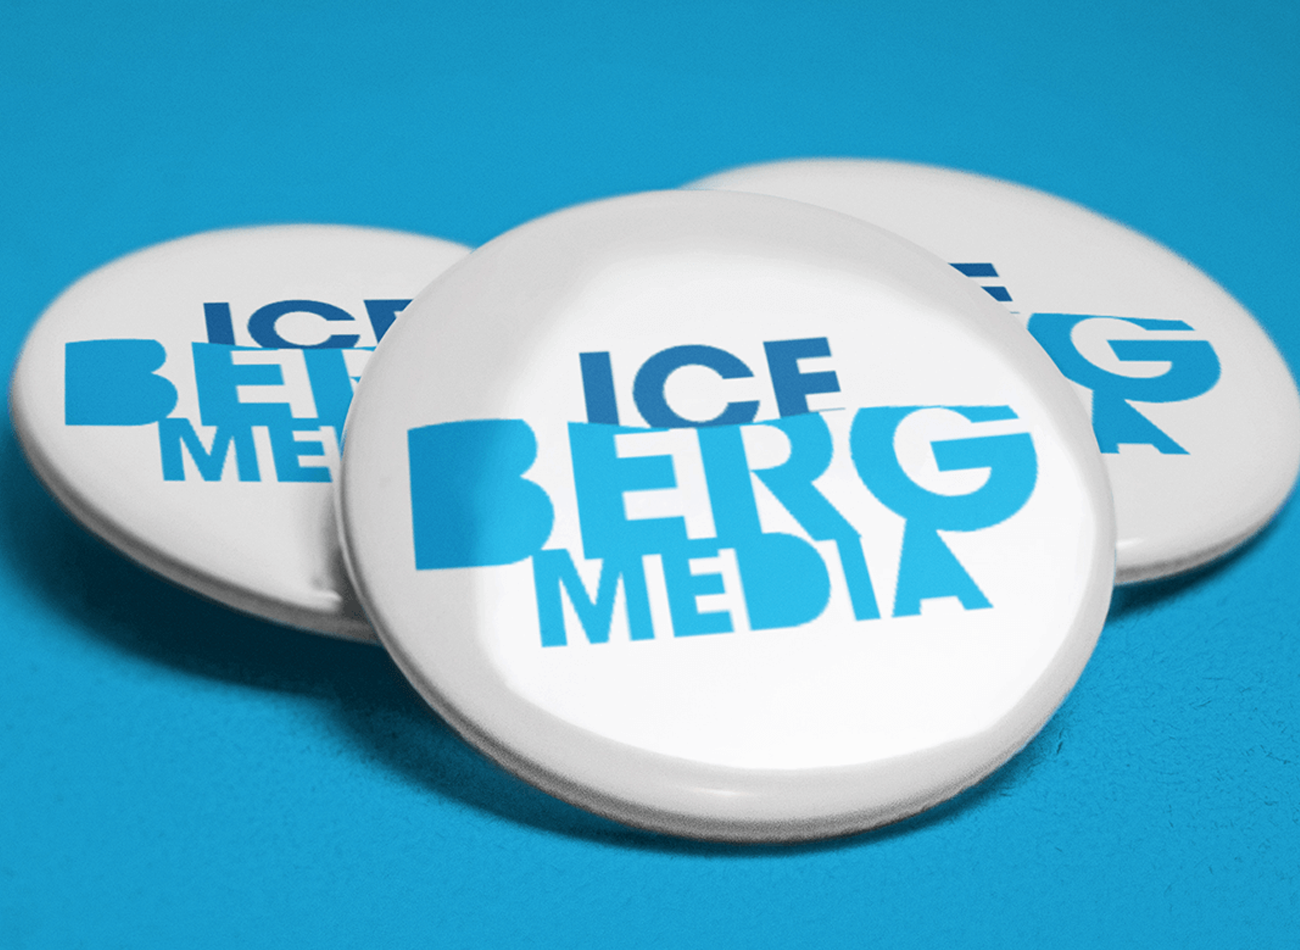 iceberg-media-typographic-logo-designers-agent-orange-south-african-creative-agency.png